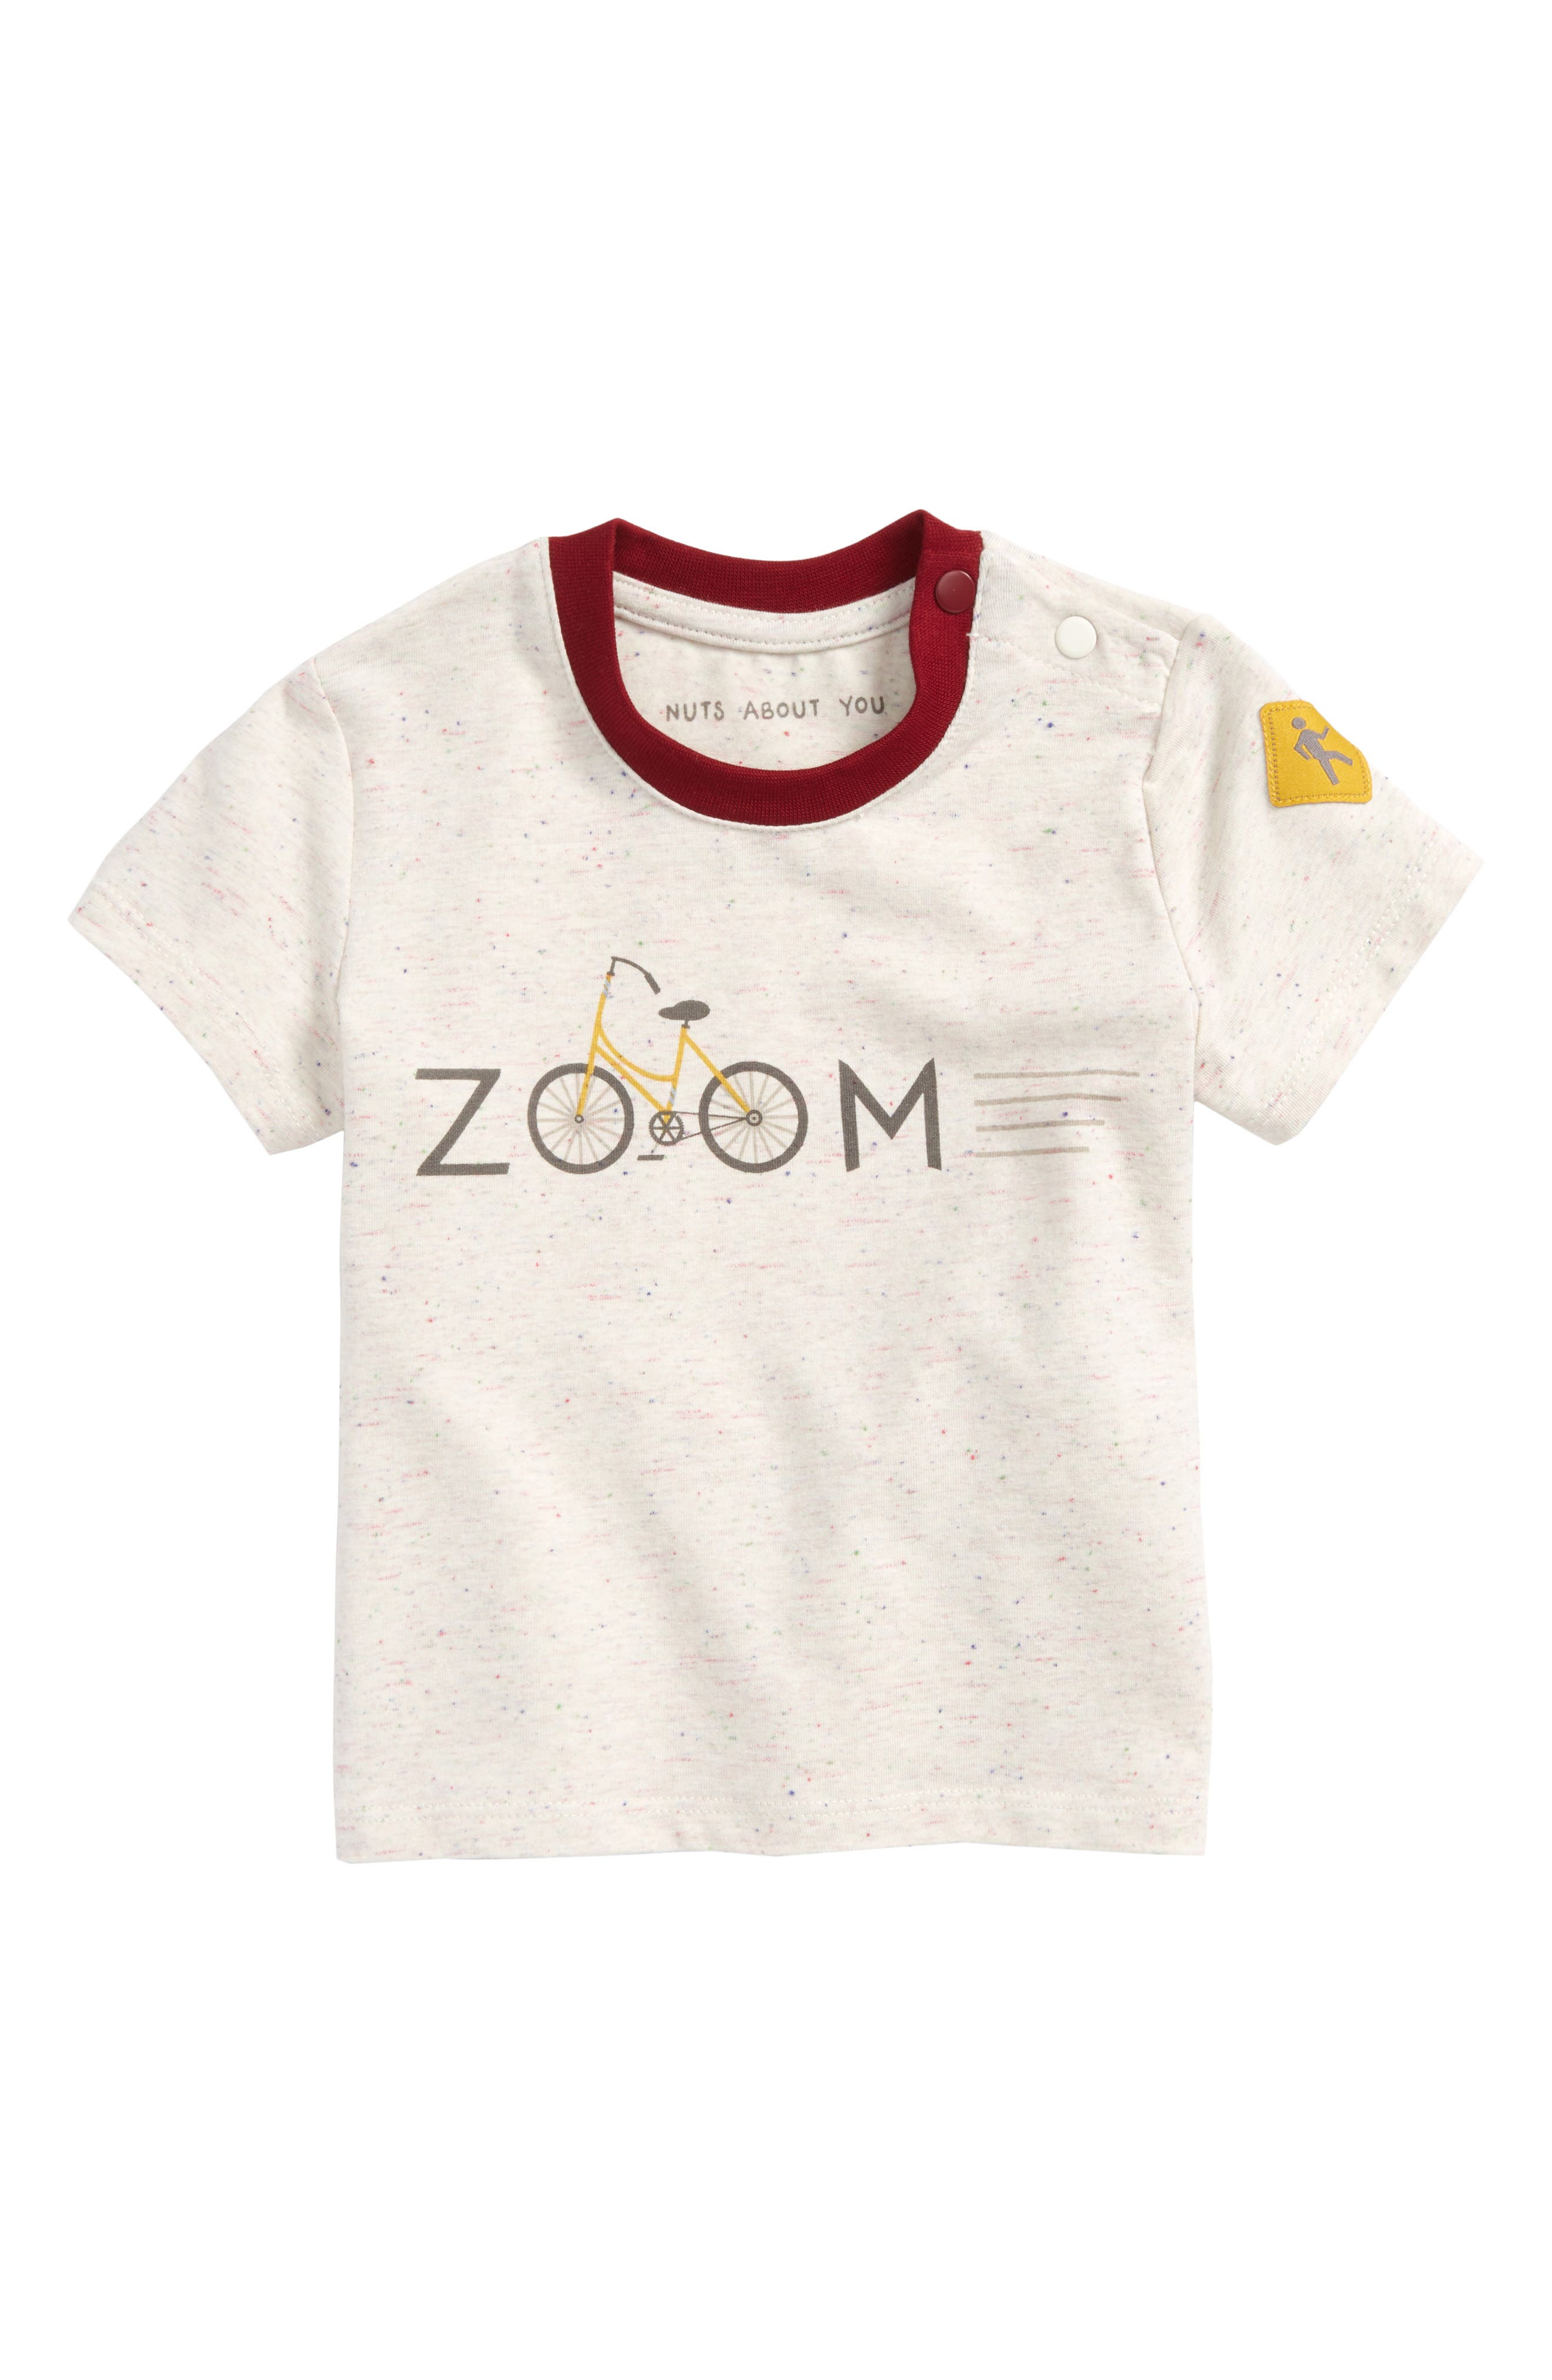 Zoom Graphic T-Shirt,                         Main,                         color, White